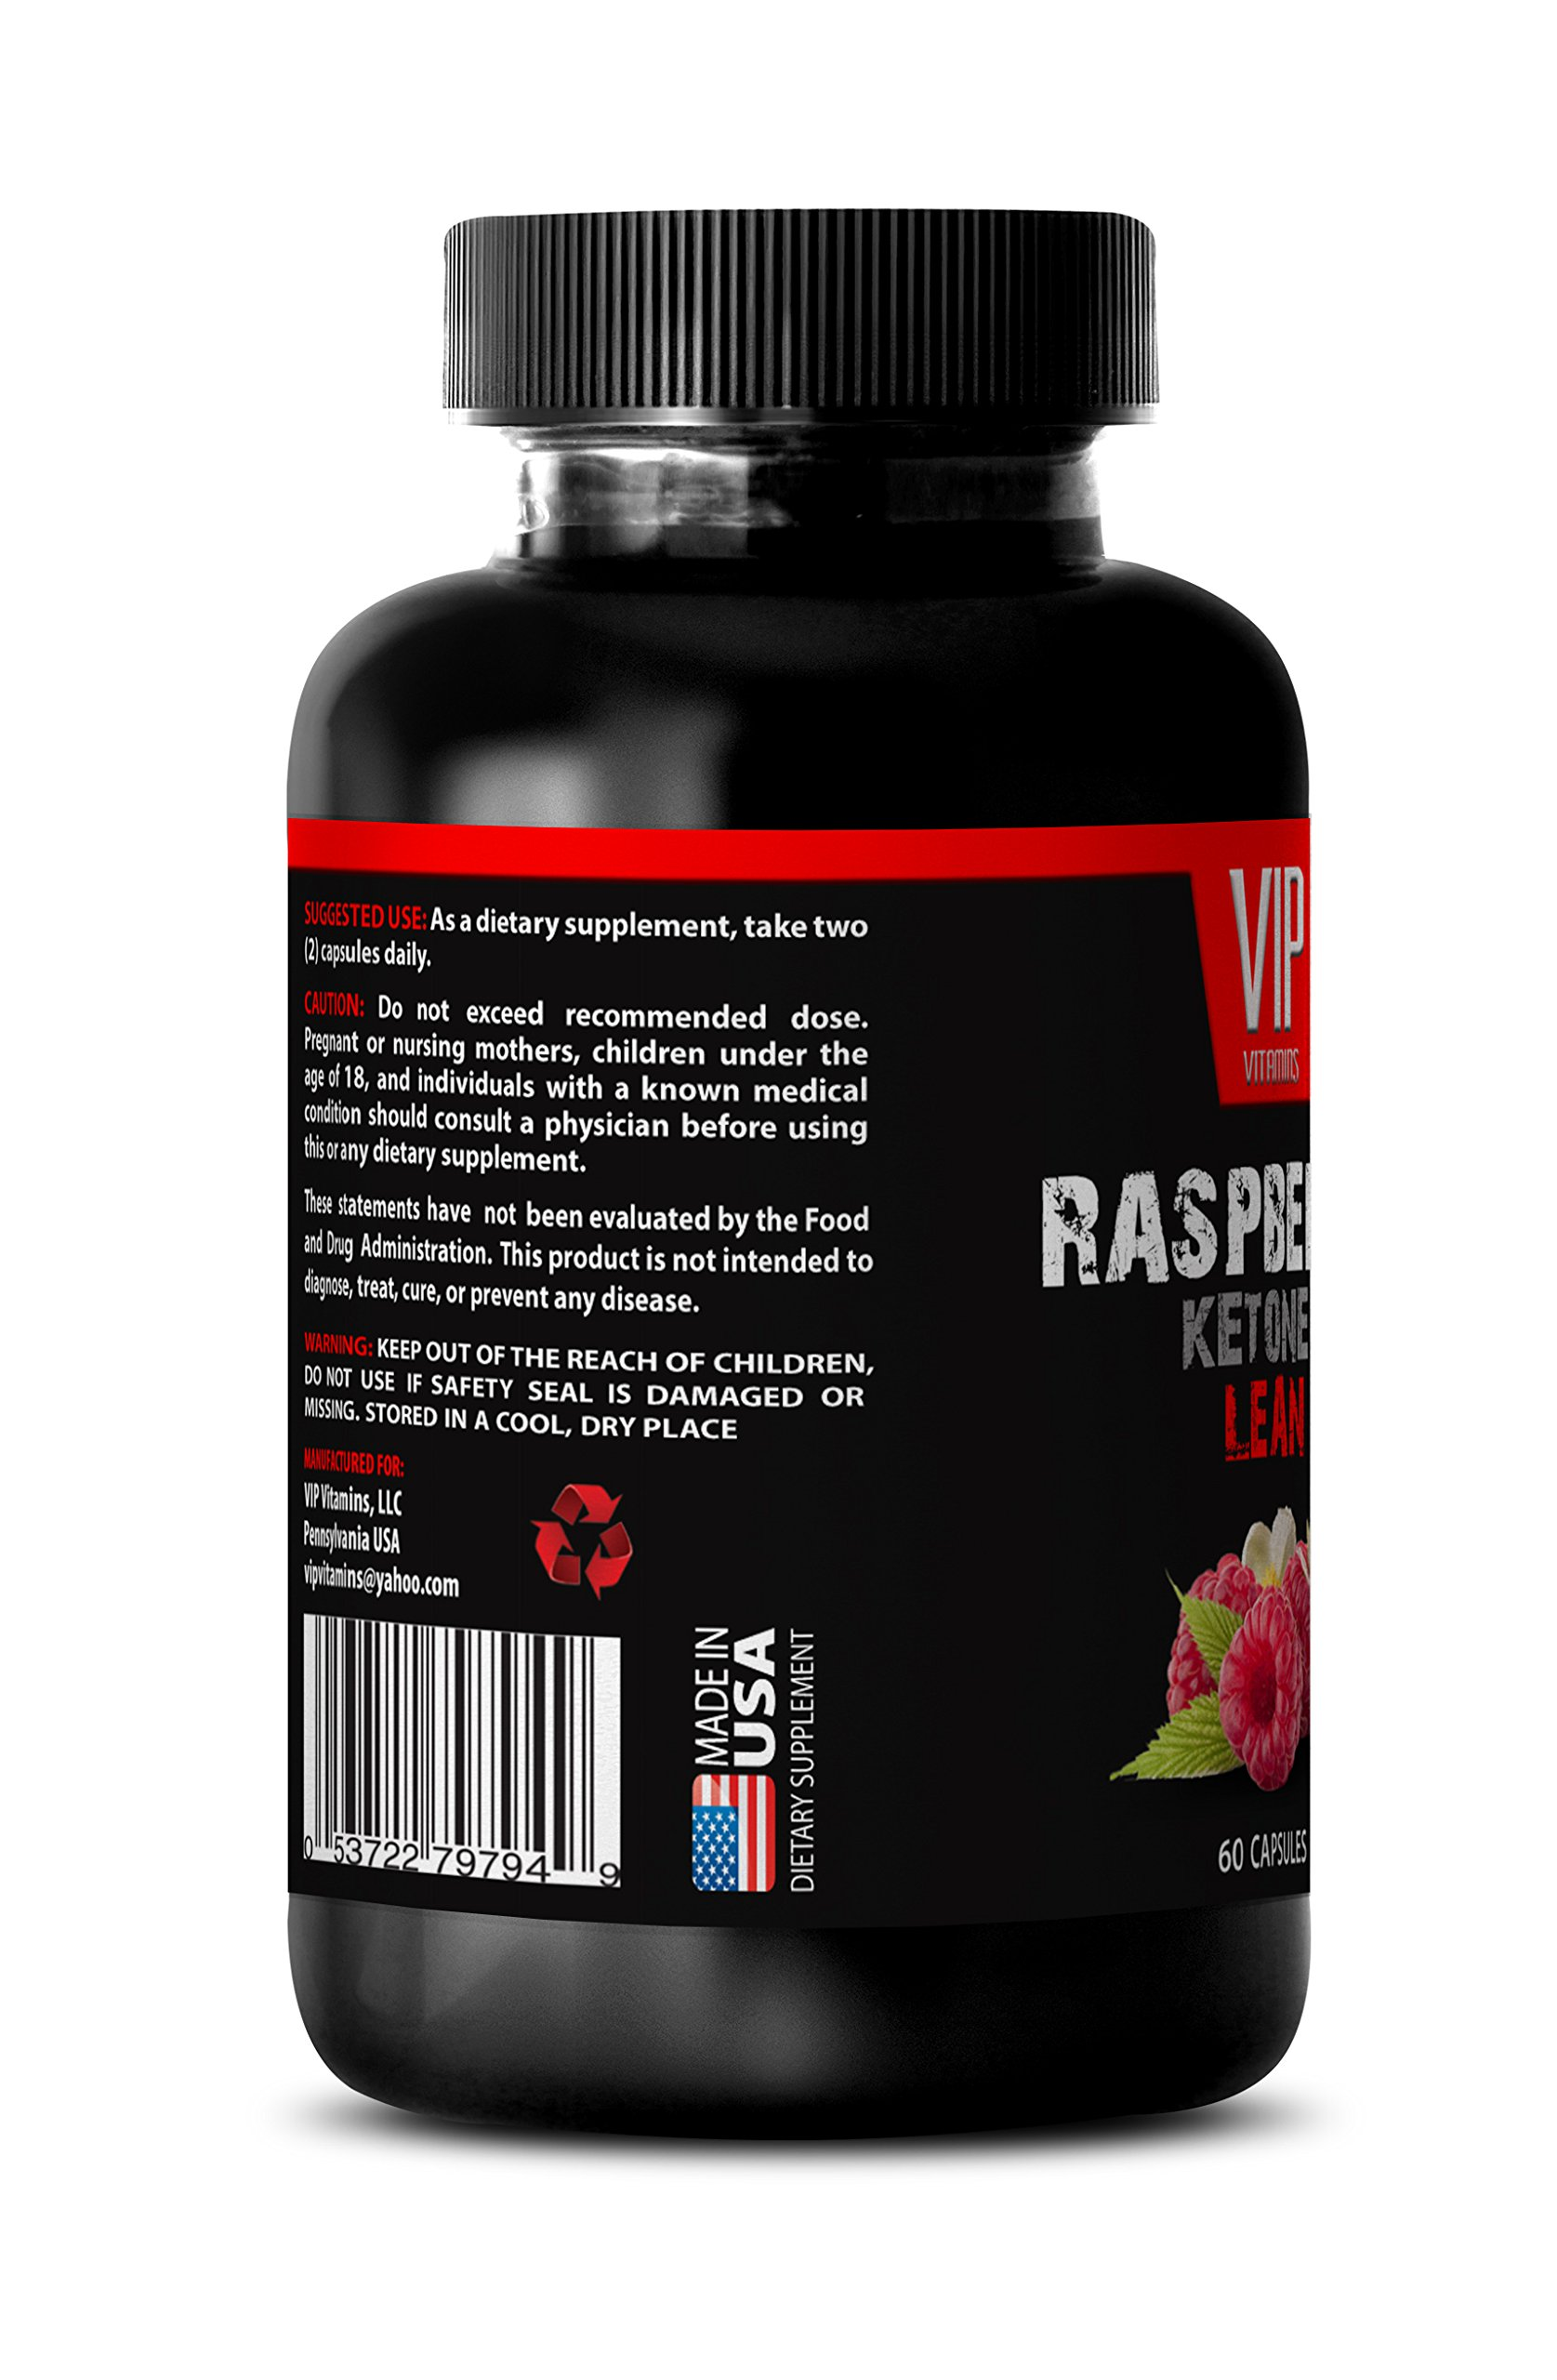 Blood sugar support supplements - RASPBERRY KETONES LEAN 1200 EXTRACT - Blood sugar support supplements - 6 Bottles 360 Capsules by VIP VITAMINS (Image #4)